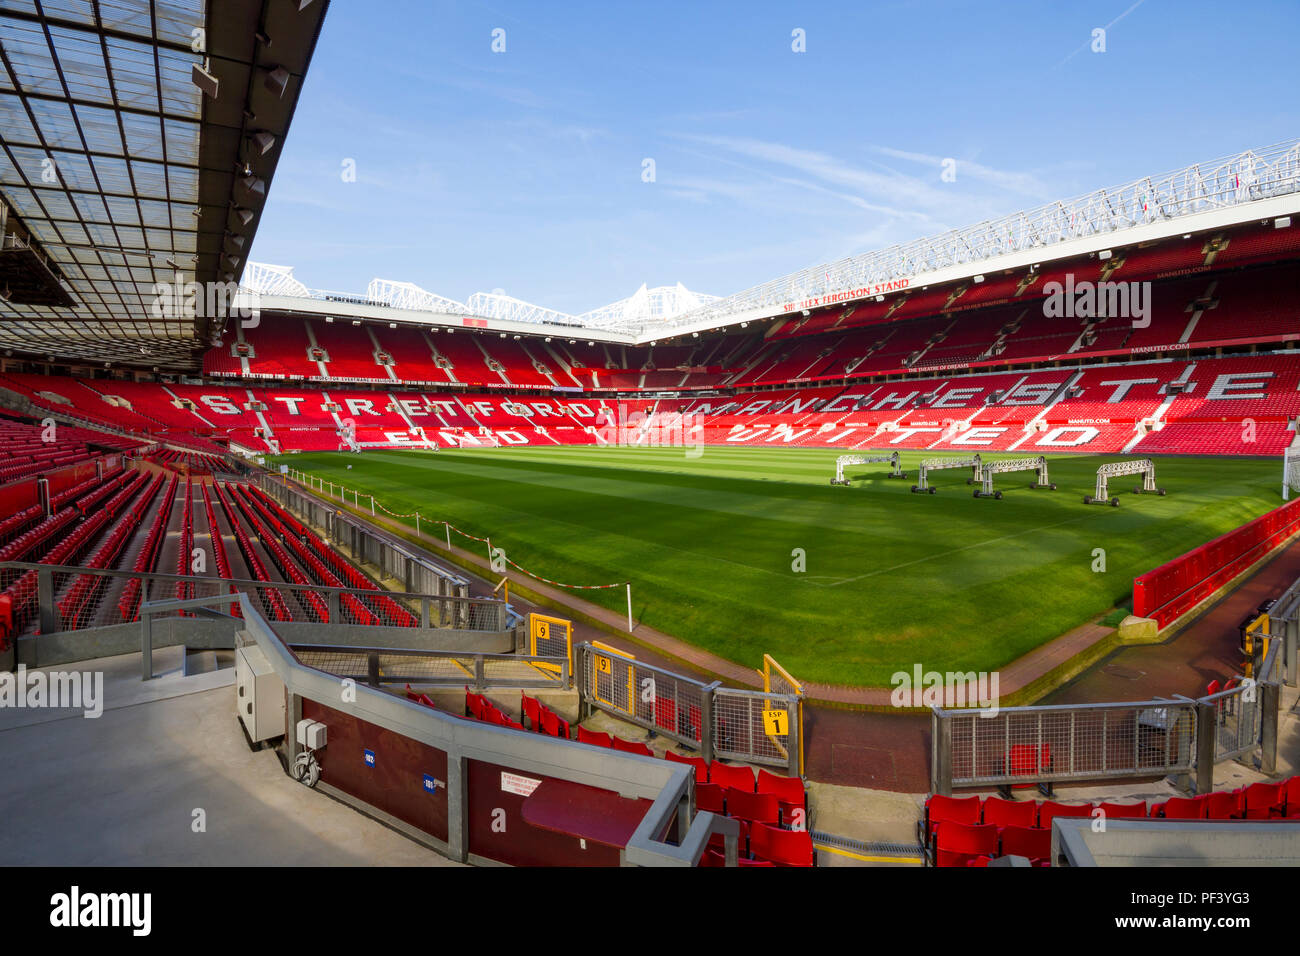 Inside Old Trafford. Home of Manchester United Football Club - Stock Image